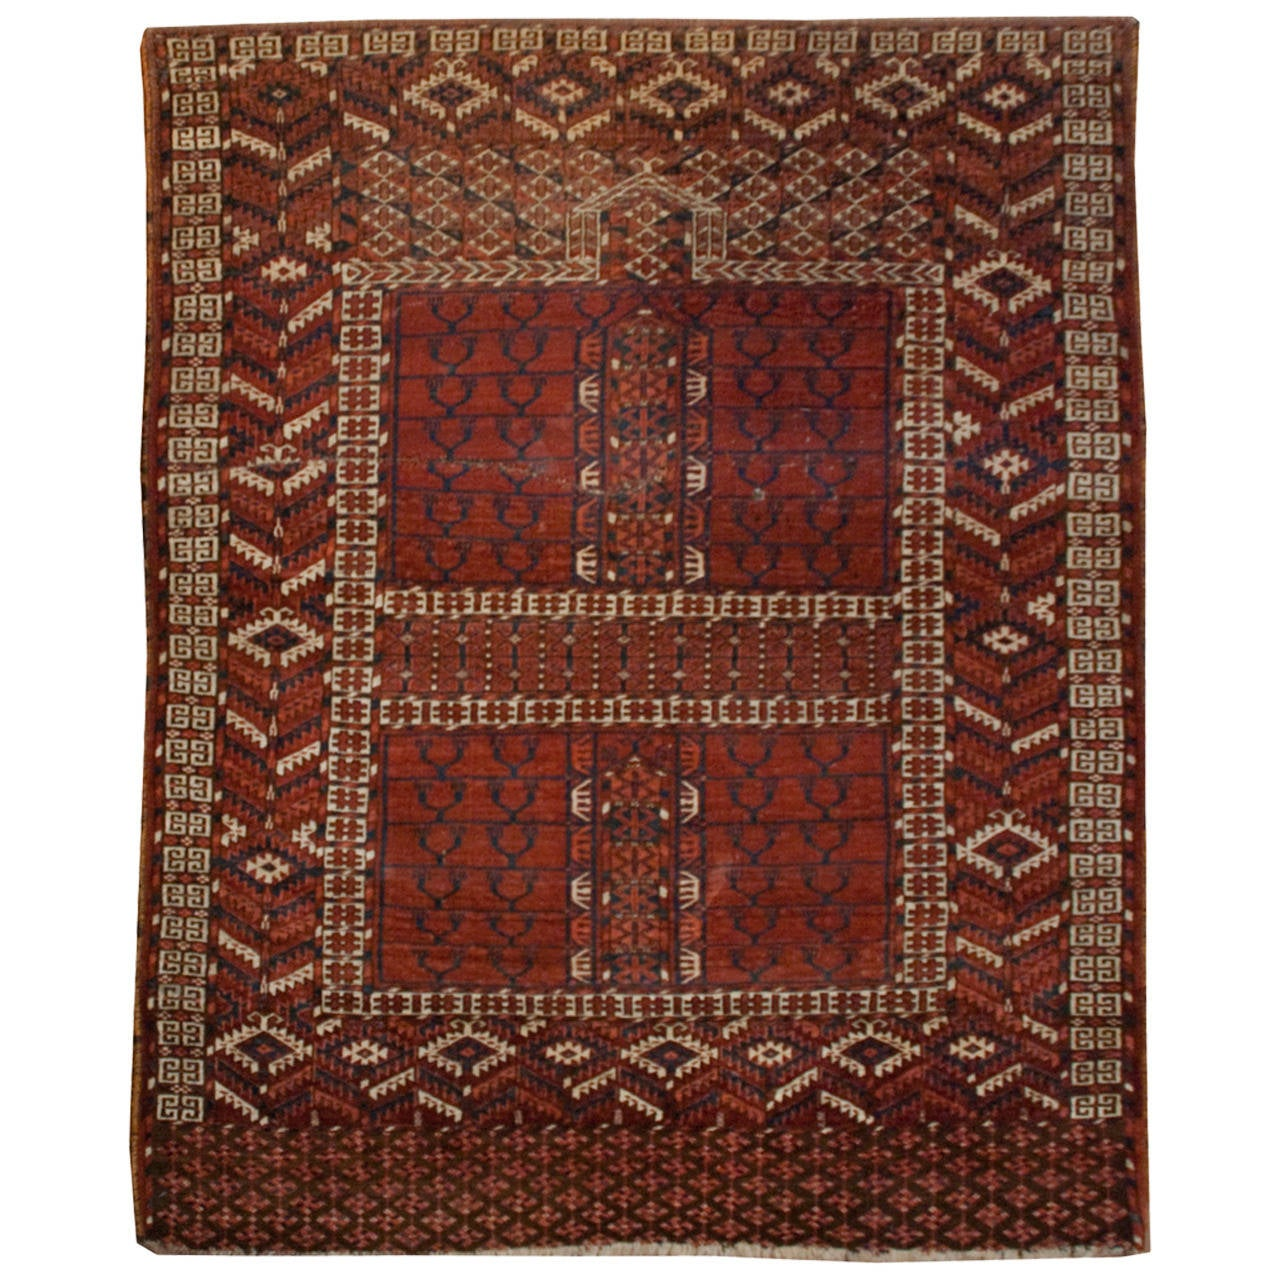 Prayer Rug Dimensions: 19th Century Turkmen Prayer Rug For Sale At 1stdibs